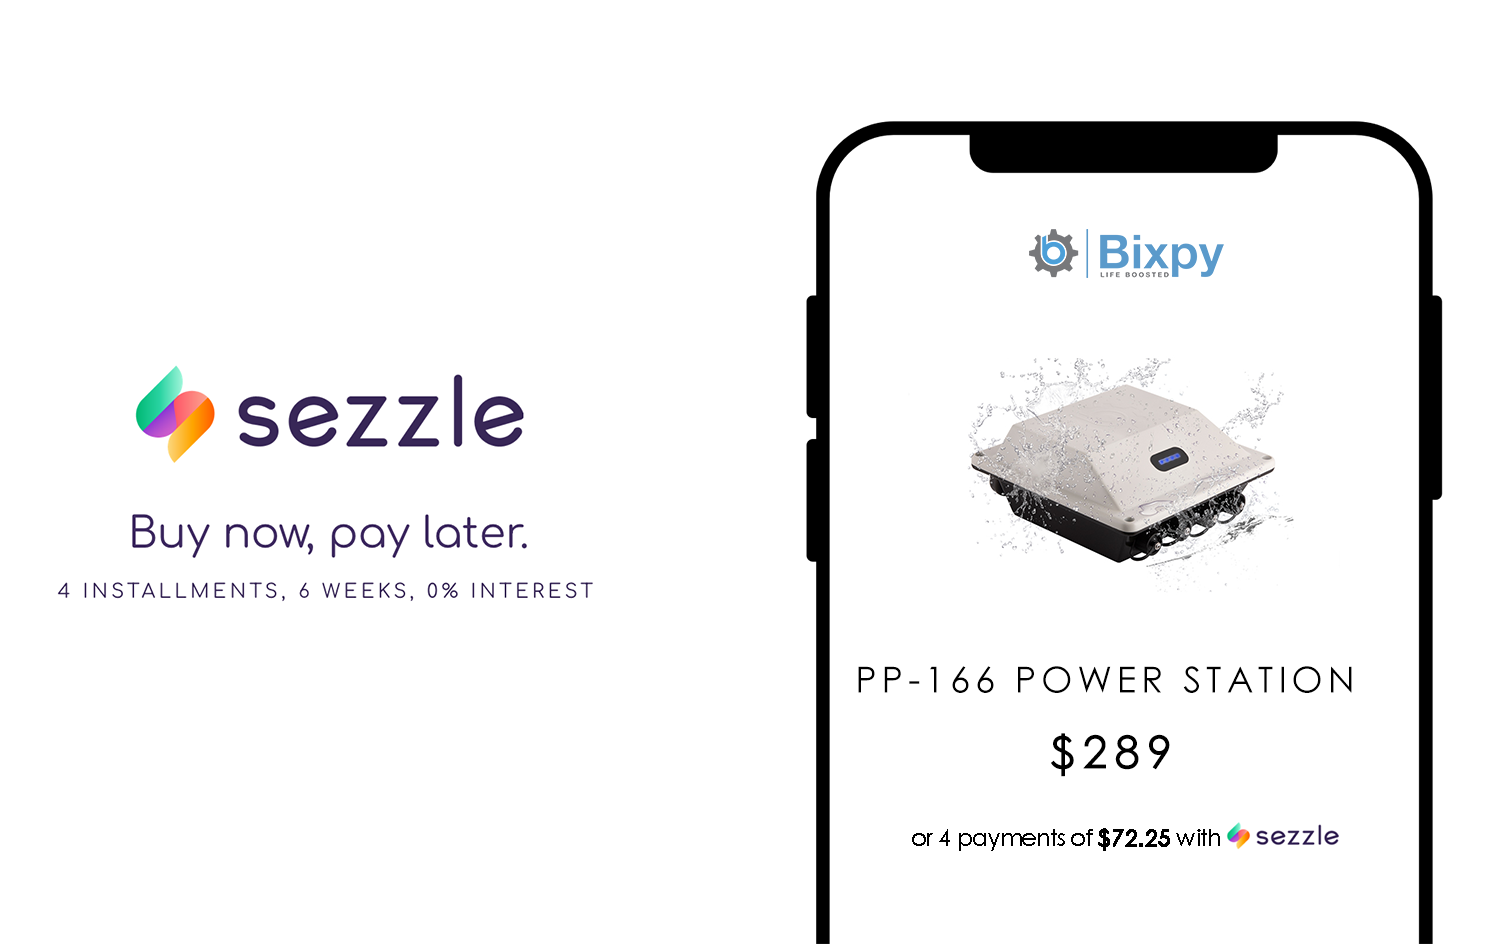 Introducing Sezzle: Buy now, pay later.